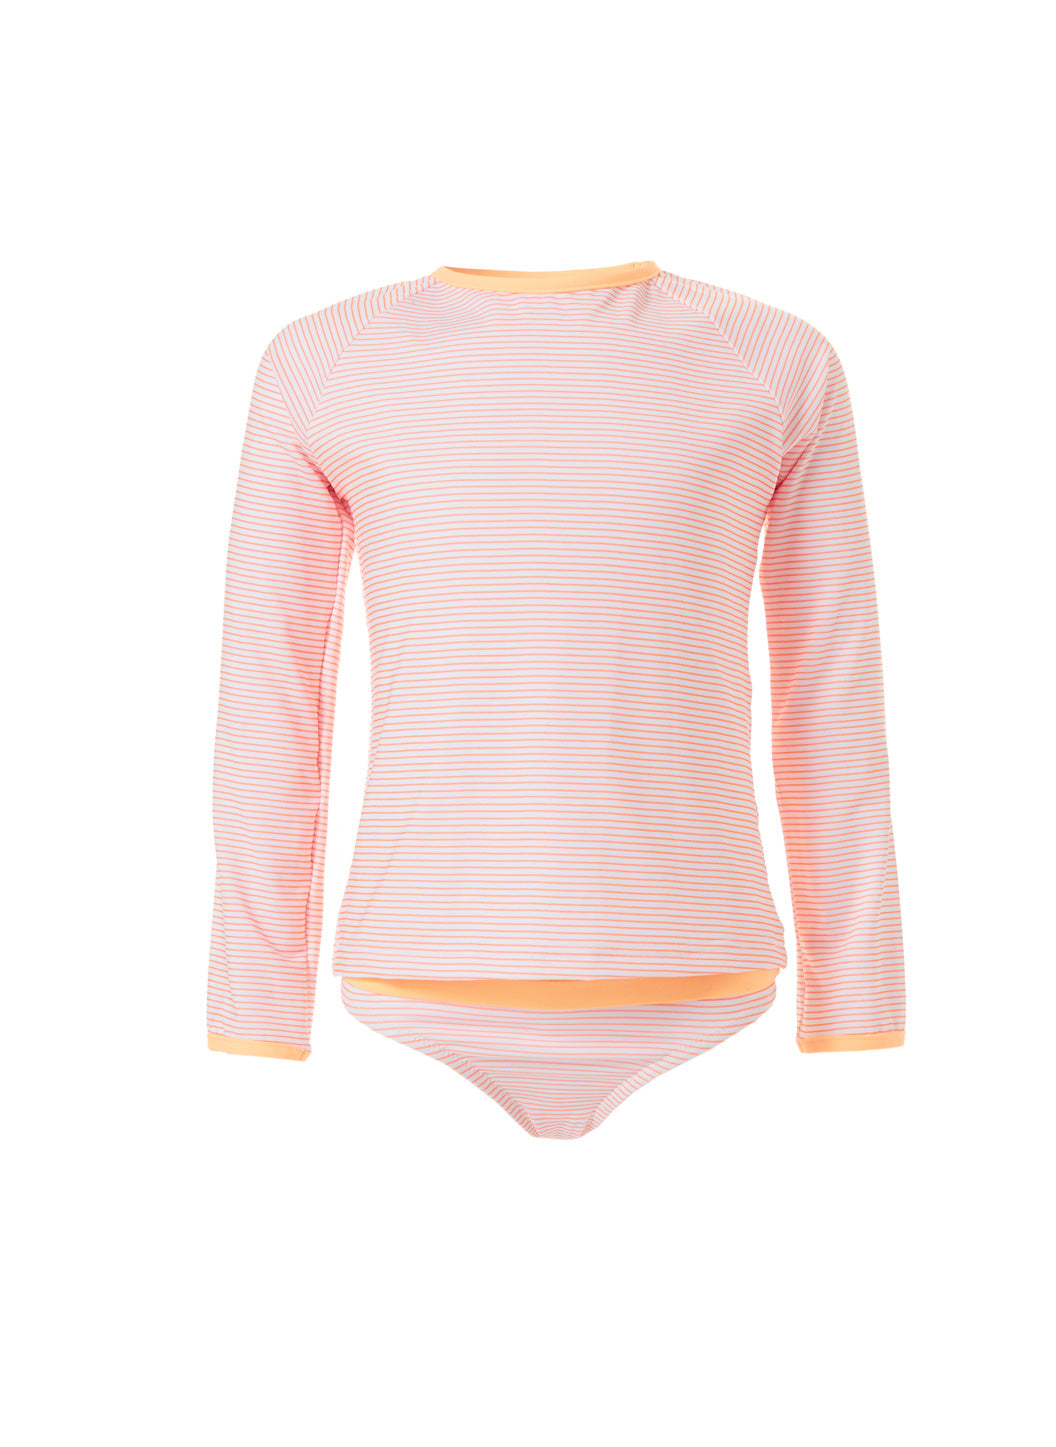 Baby Dakota Mango Stripe Rash Vest